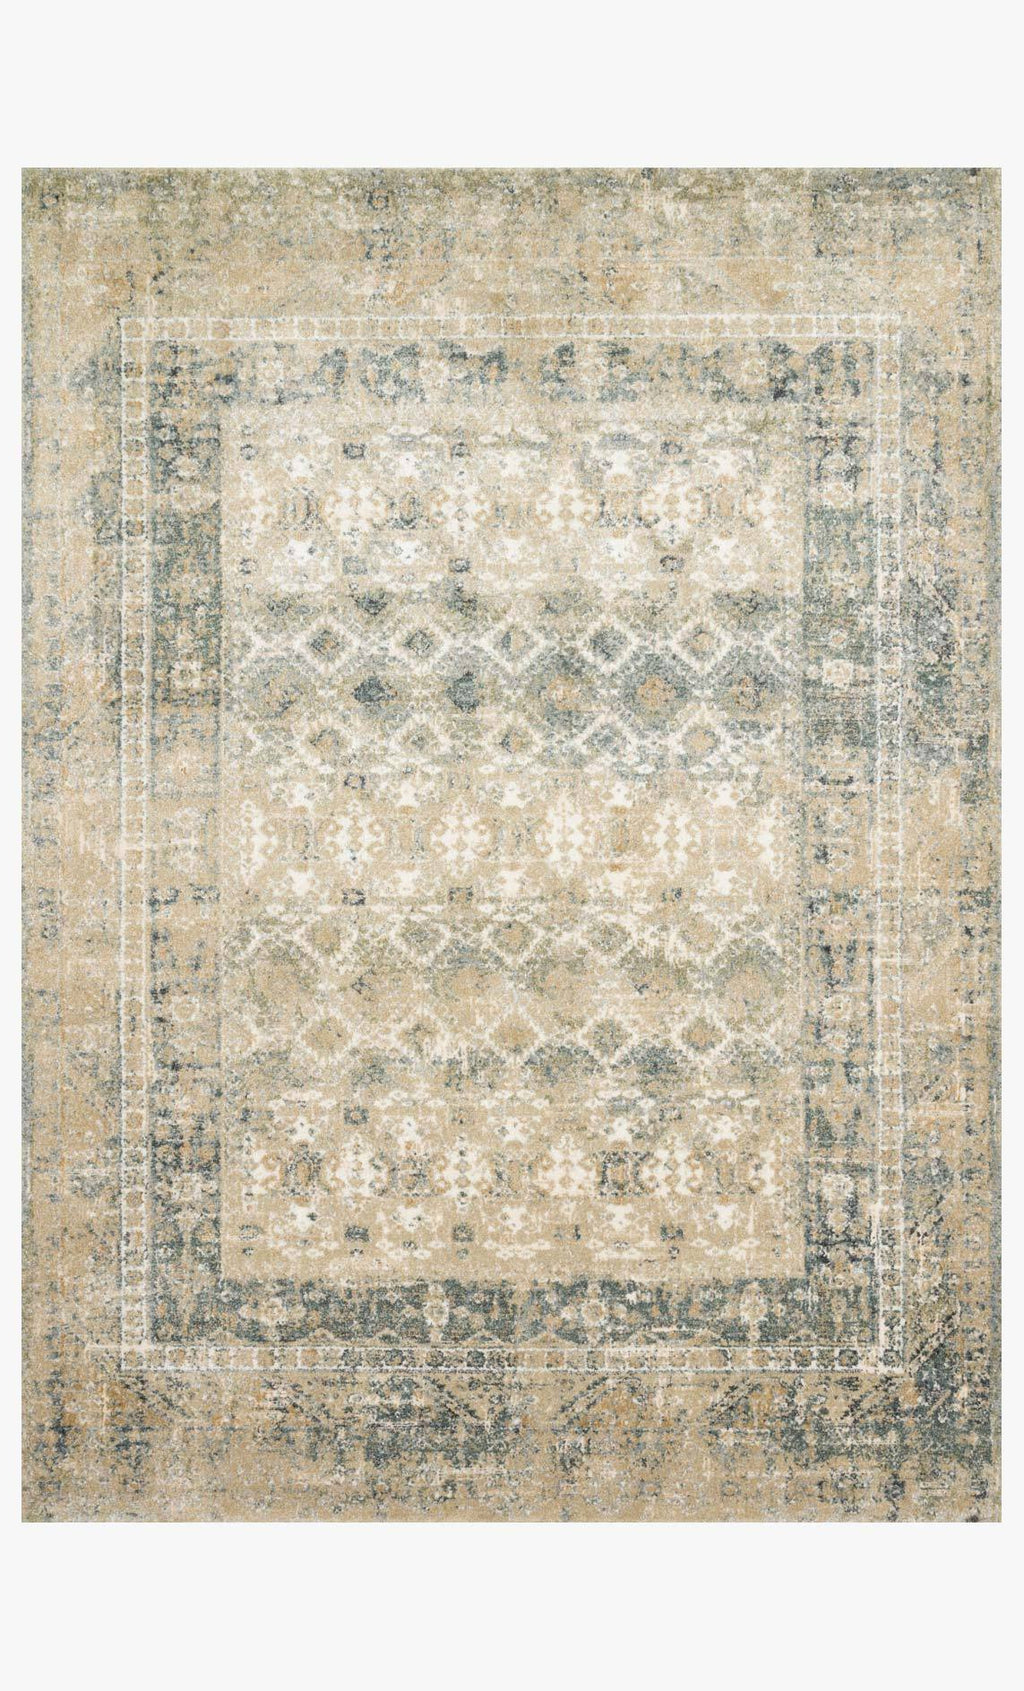 James Collection Rug in SAND / OCEAN